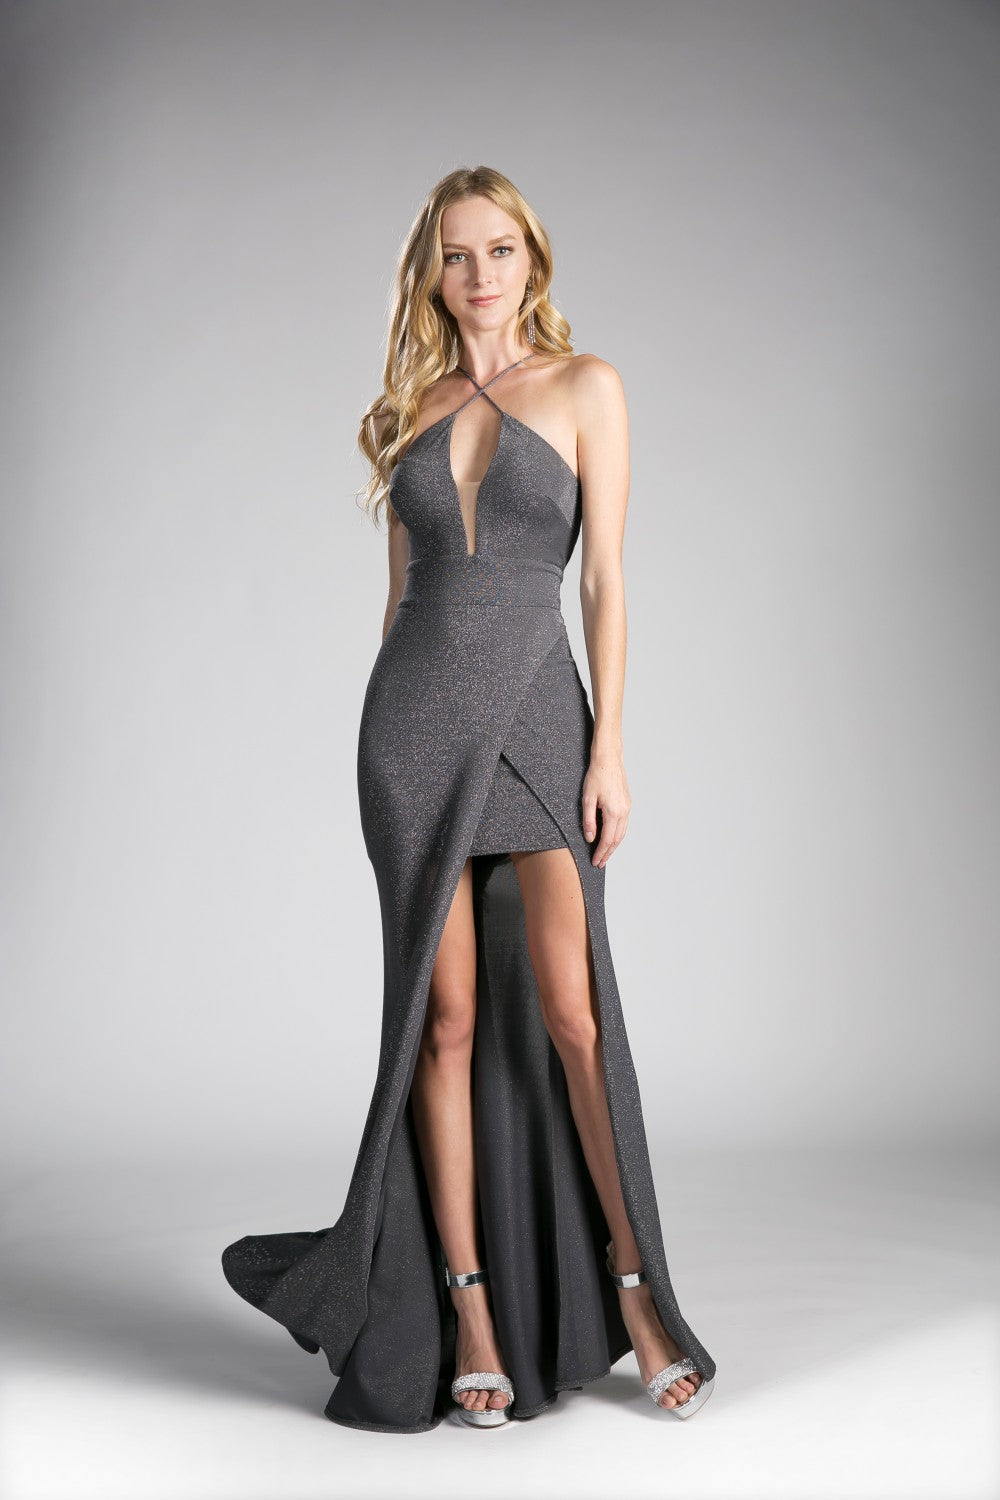 Fitted Metallic Gown With Criss Cross Neckline And Leg Slit